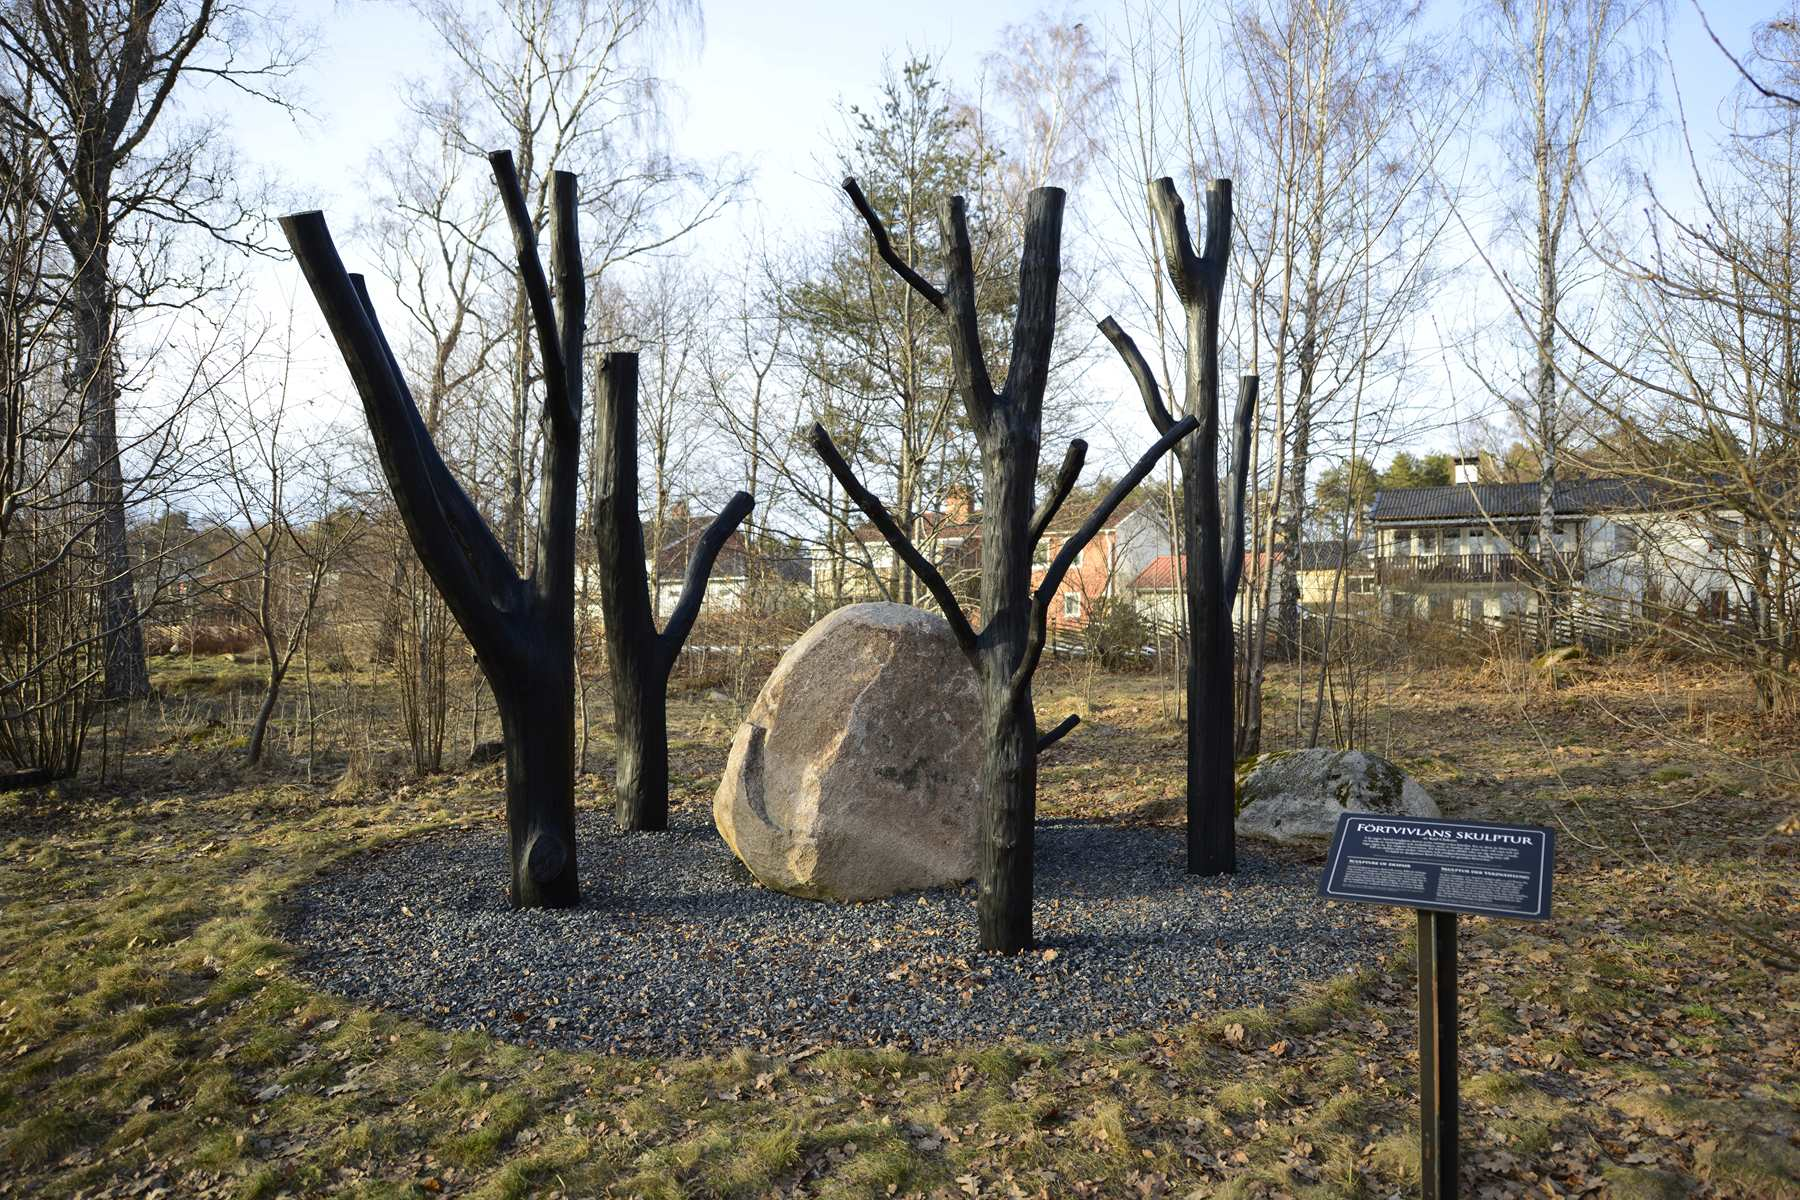 Despair - Astrid Lindgrens Näs, Vimmerby, Sweden 2015. Commission by Karl Chilcott.